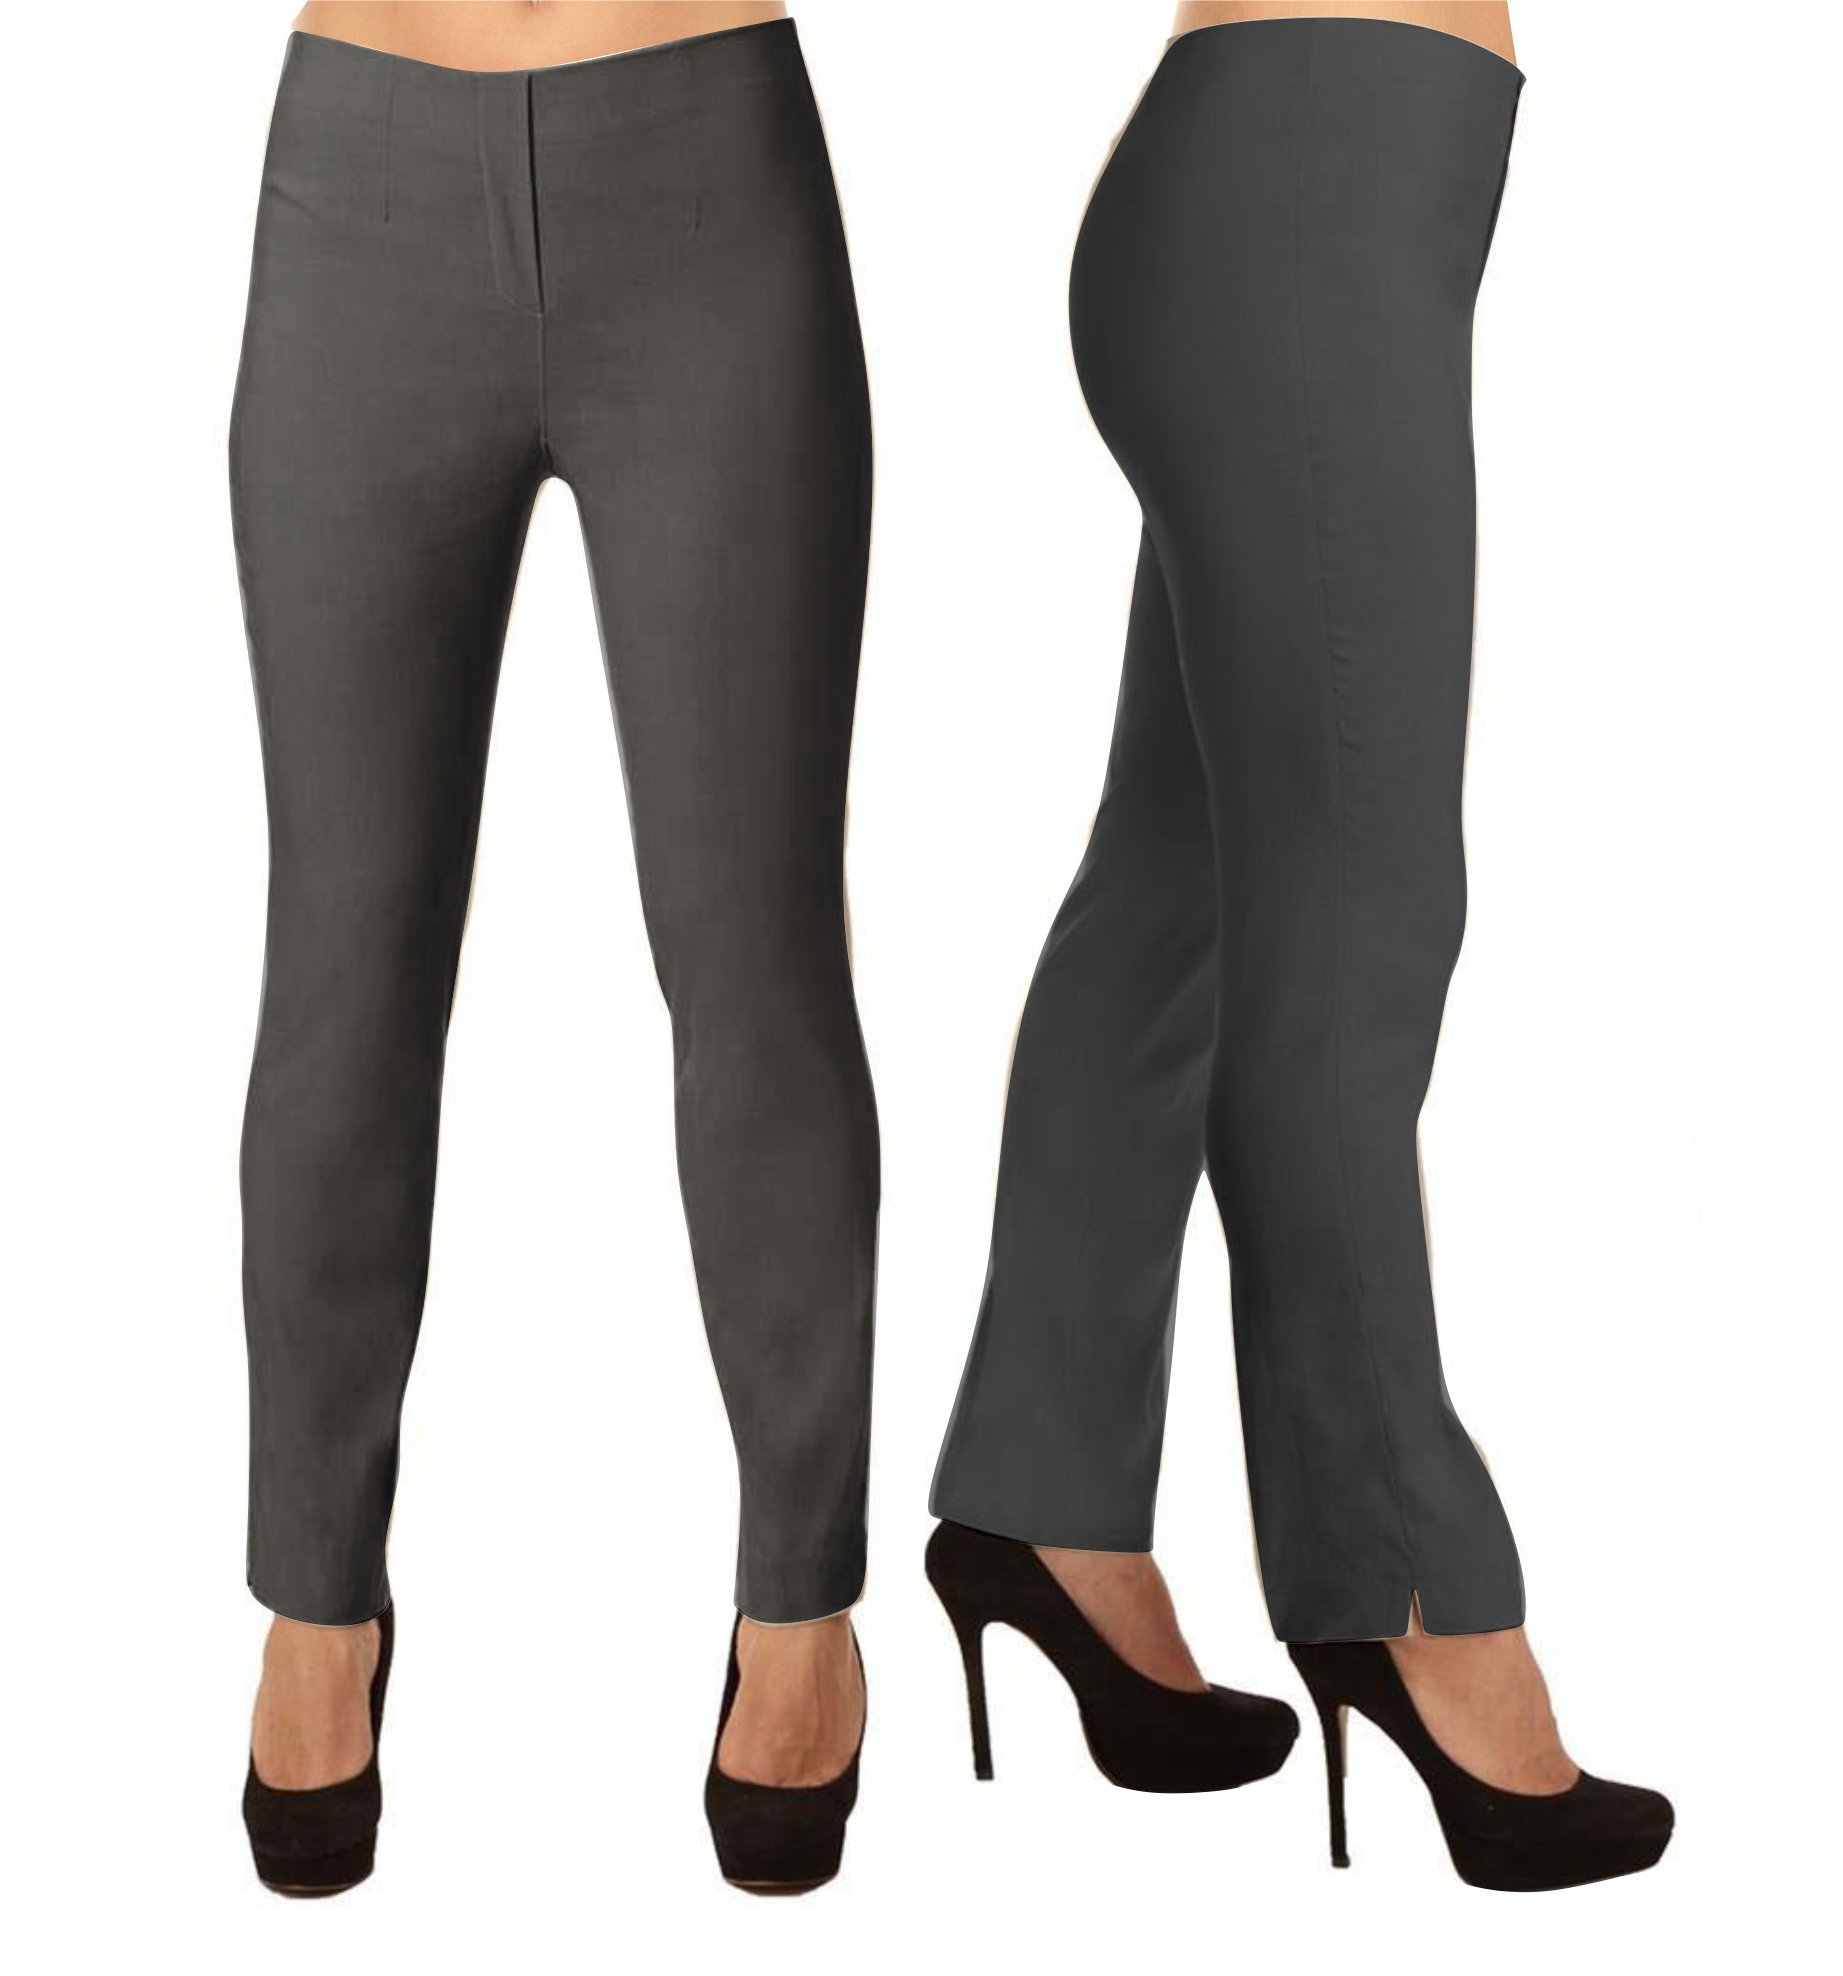 Lior Paris LIZE a Classic Fit Straight Pant For EveryBody. (6, Charcoal) by Lior paris